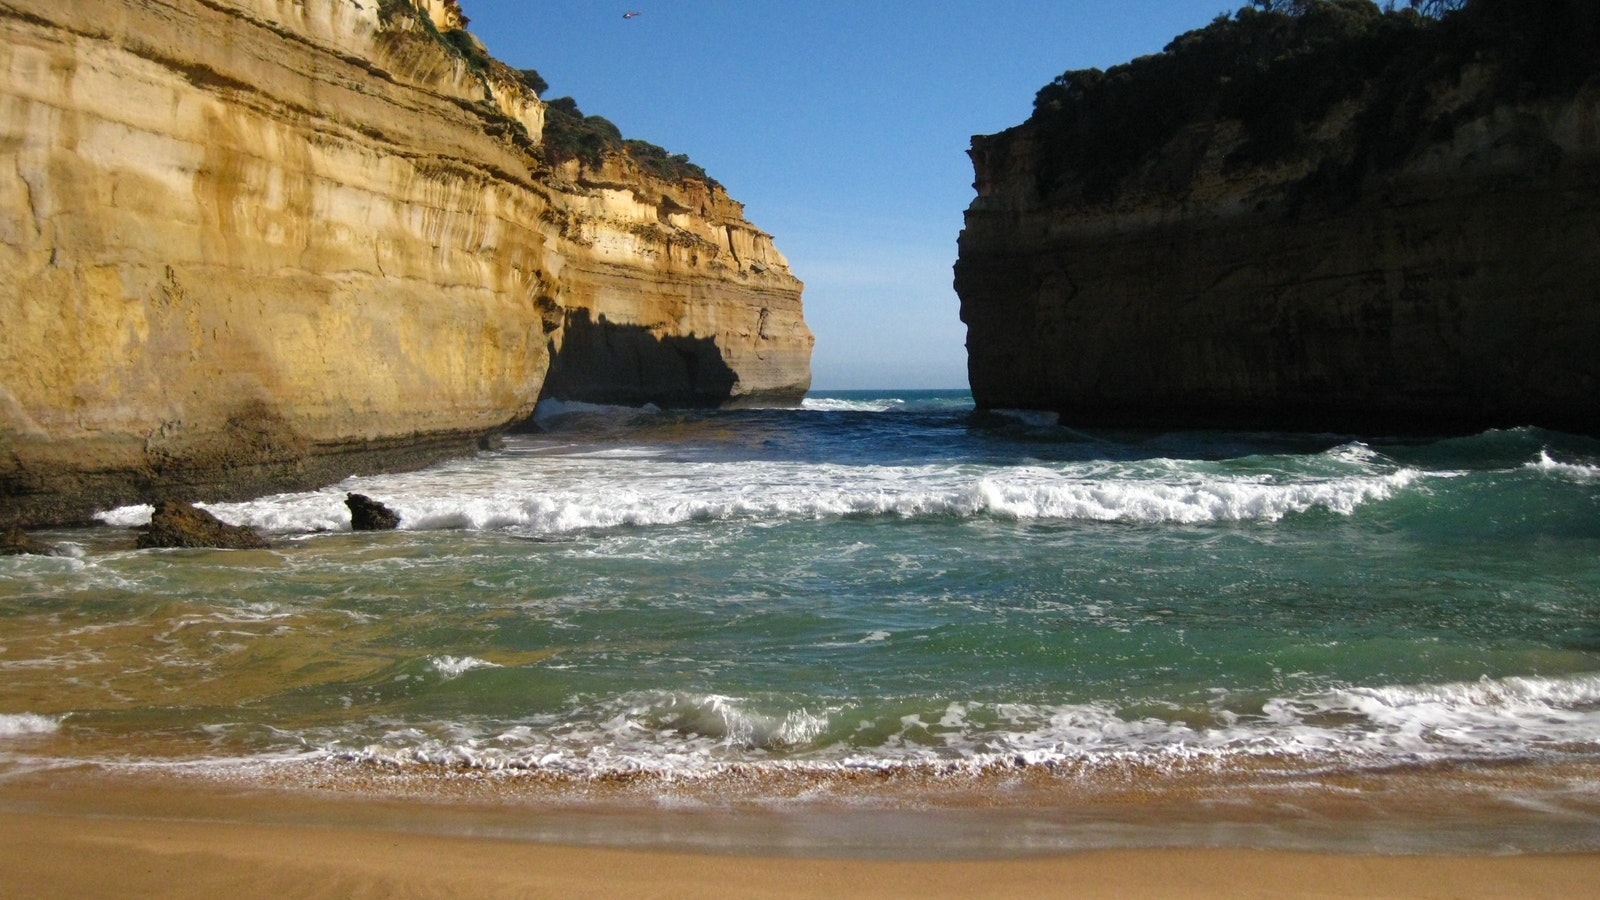 On the beach at Loch Ard Gorge